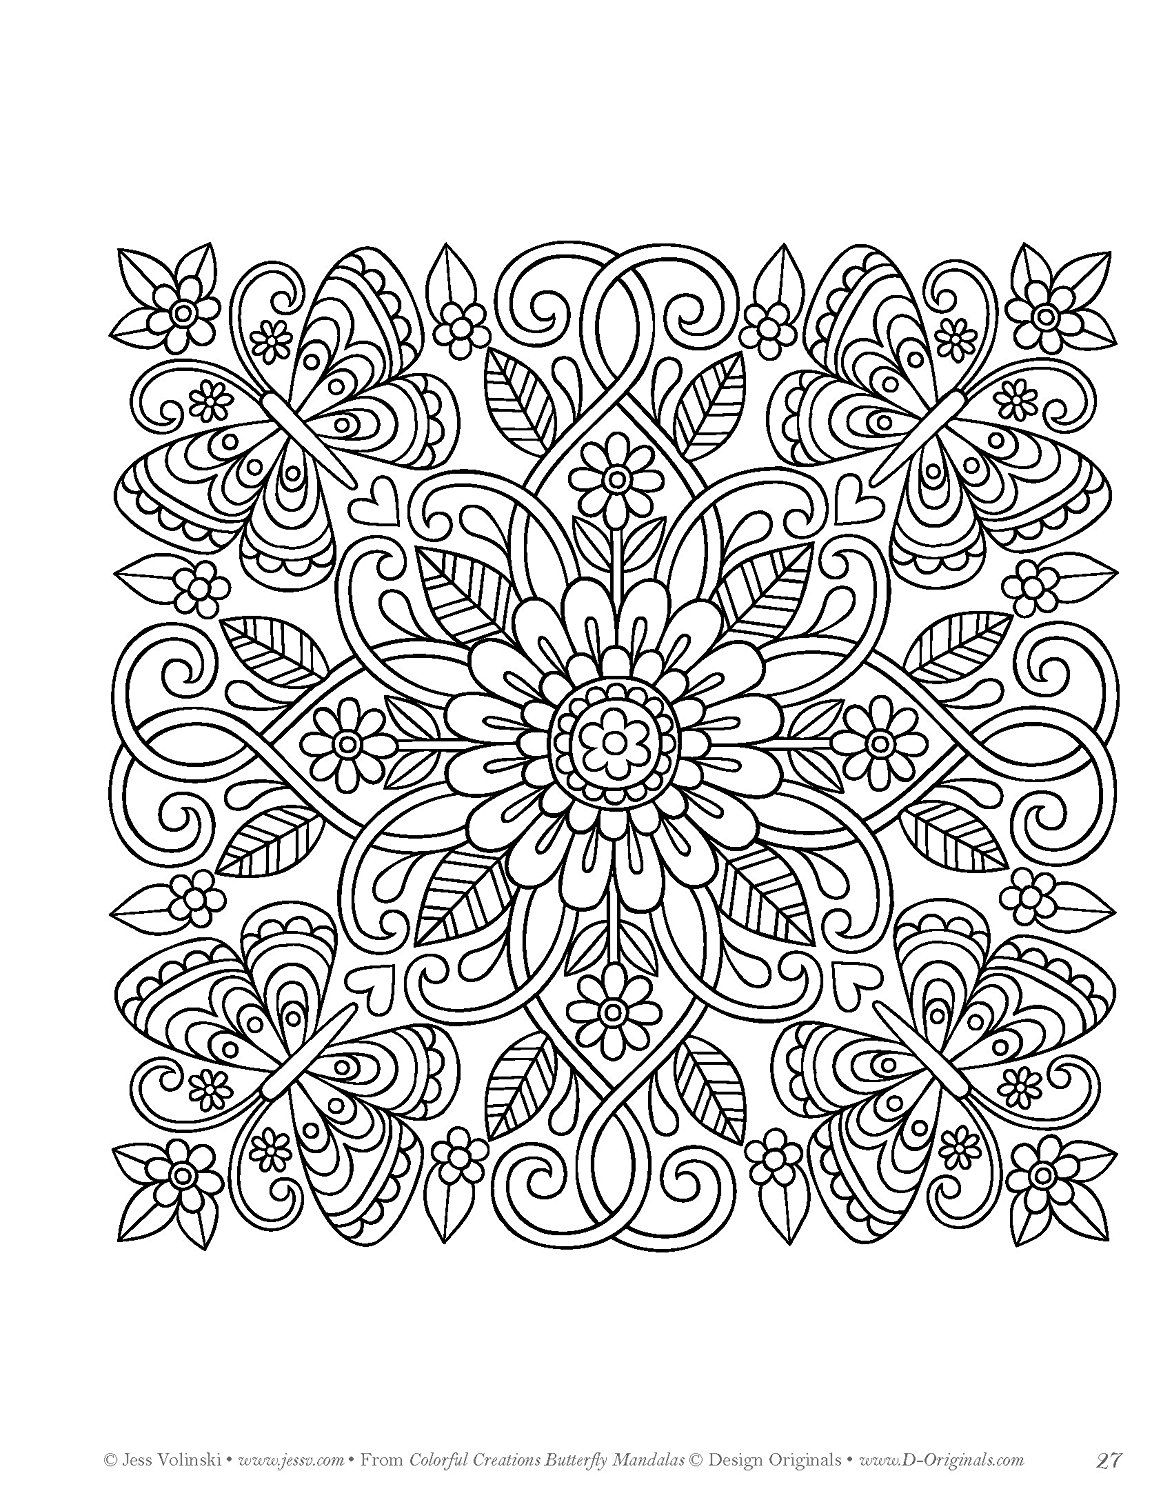 - Colorful Creations Butterfly Mandalas: Coloring Book Pages